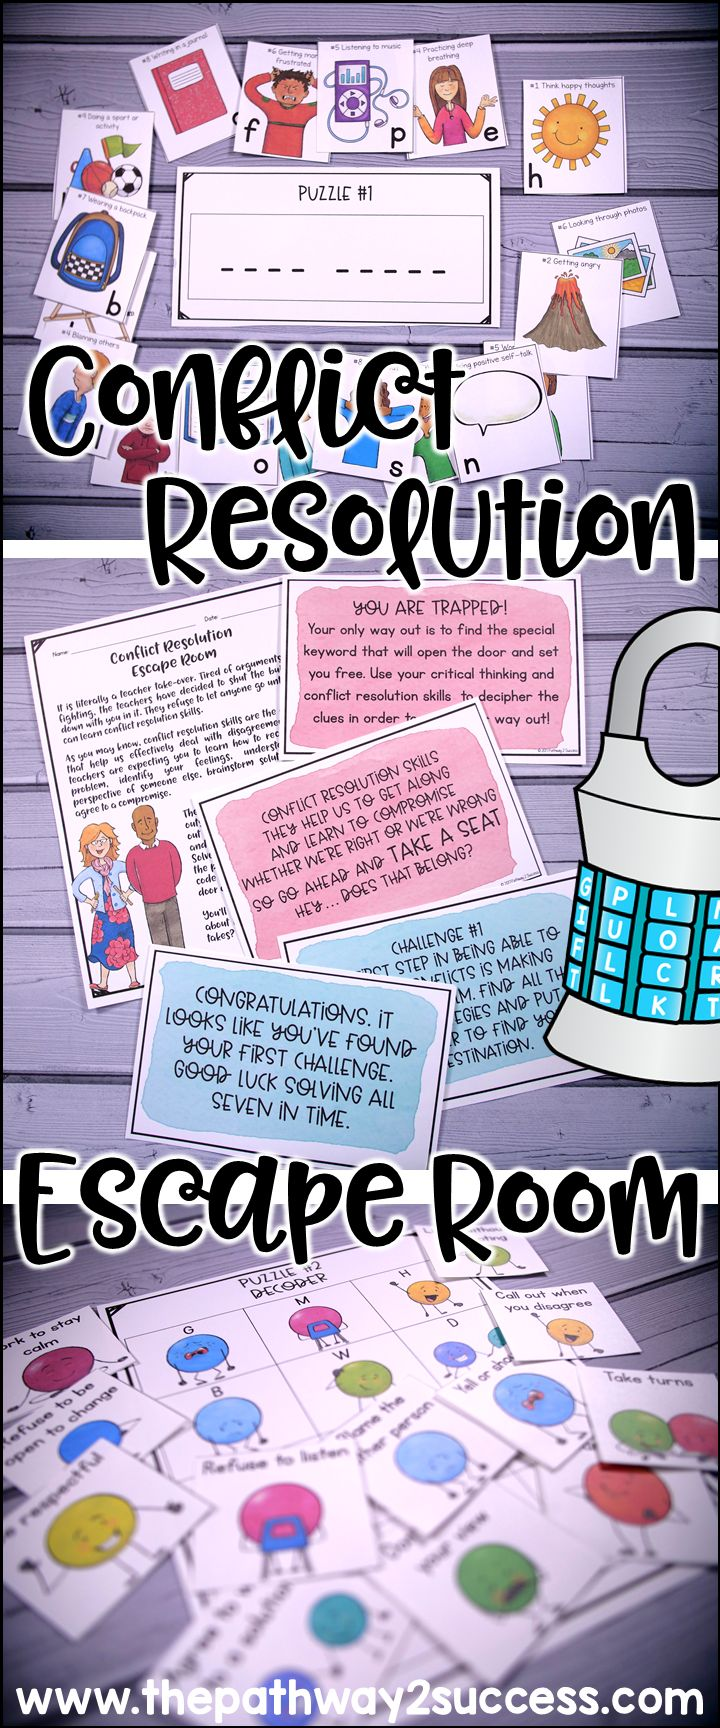 Use this scavenger hunt style escape room activity to teach and discuss conflict resolution with your students! Ideal for a small groups including counseling groups, advisory, resource rooms, and more. A whole class version is also included.